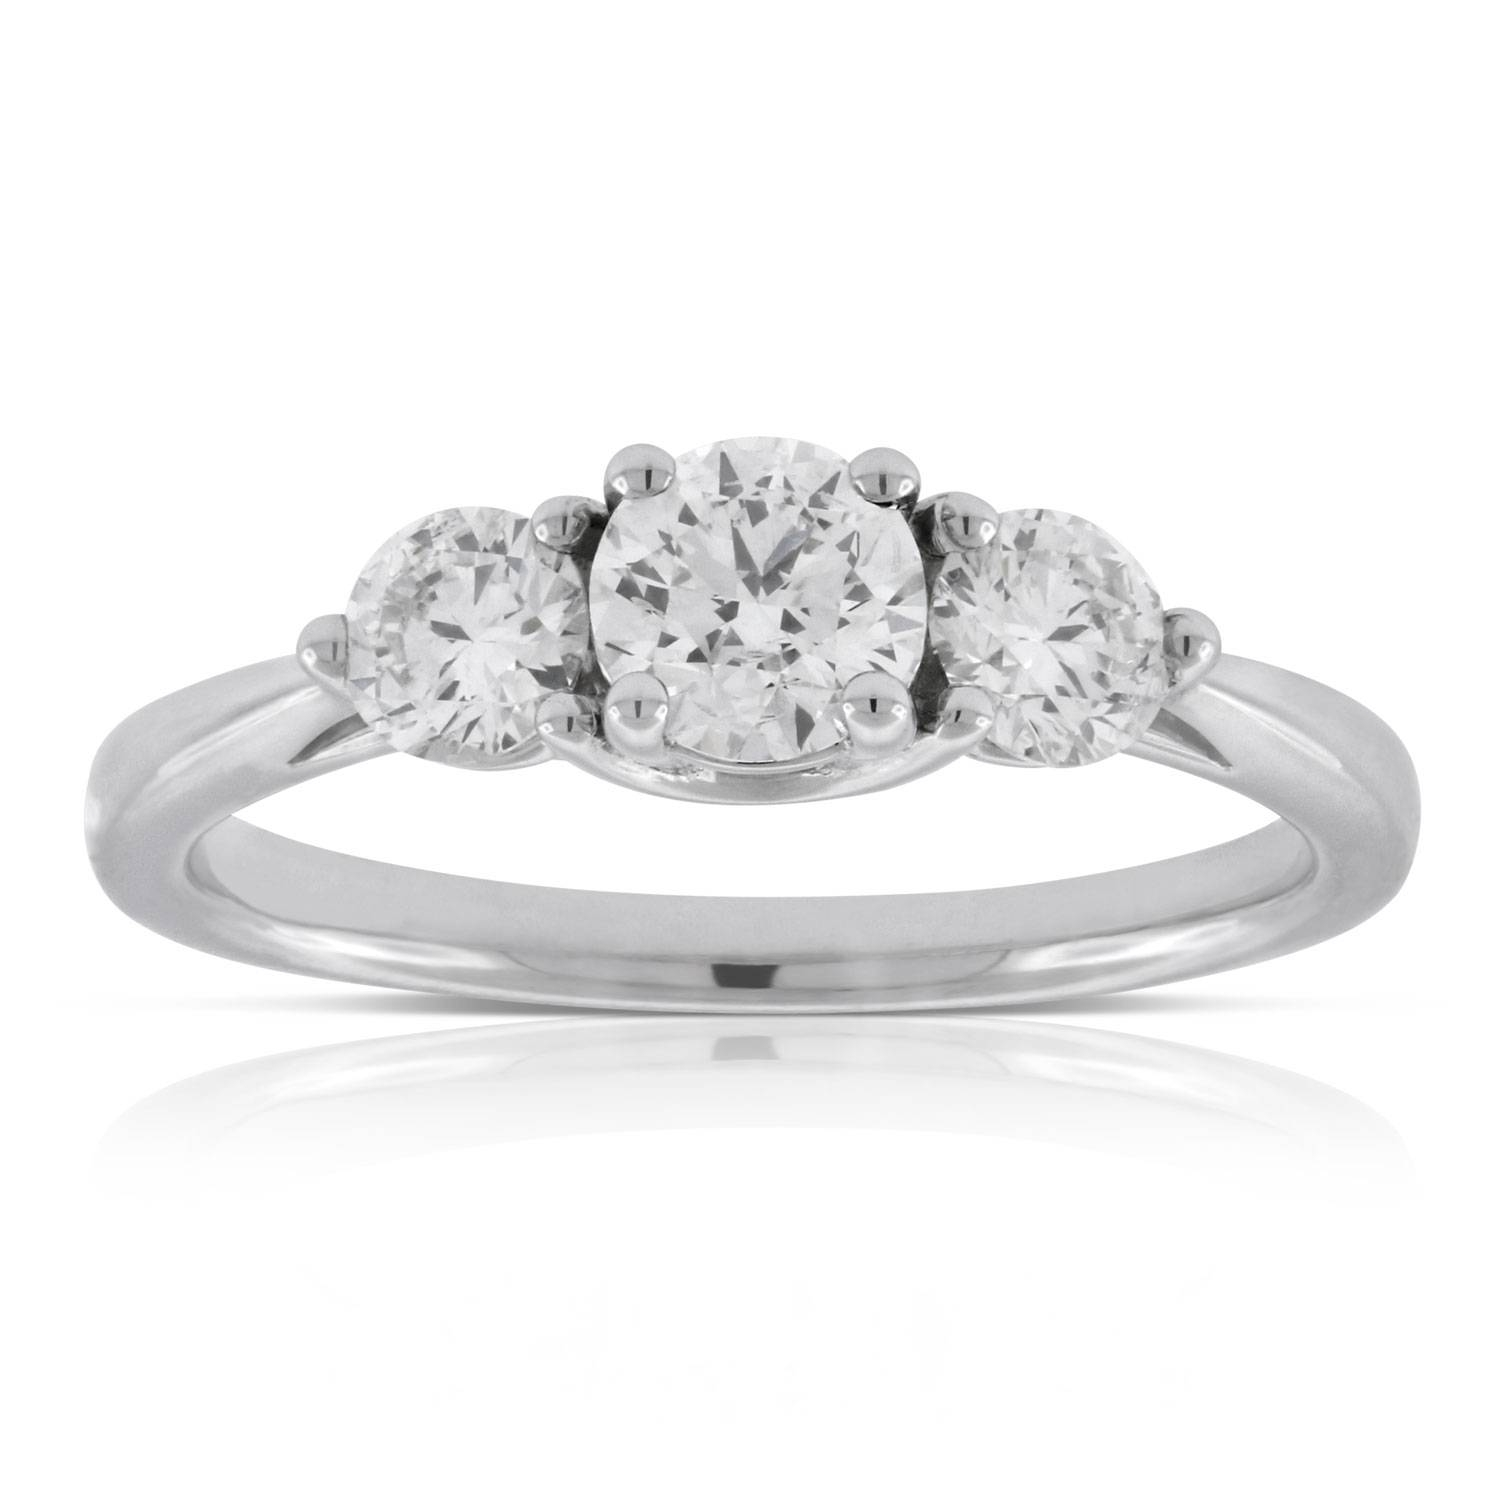 Ikuma Canadian Diamond Engagement 3 Stone Ring 14K | Ben Bridge With 3 Stone Platinum Engagement Rings (View 12 of 15)